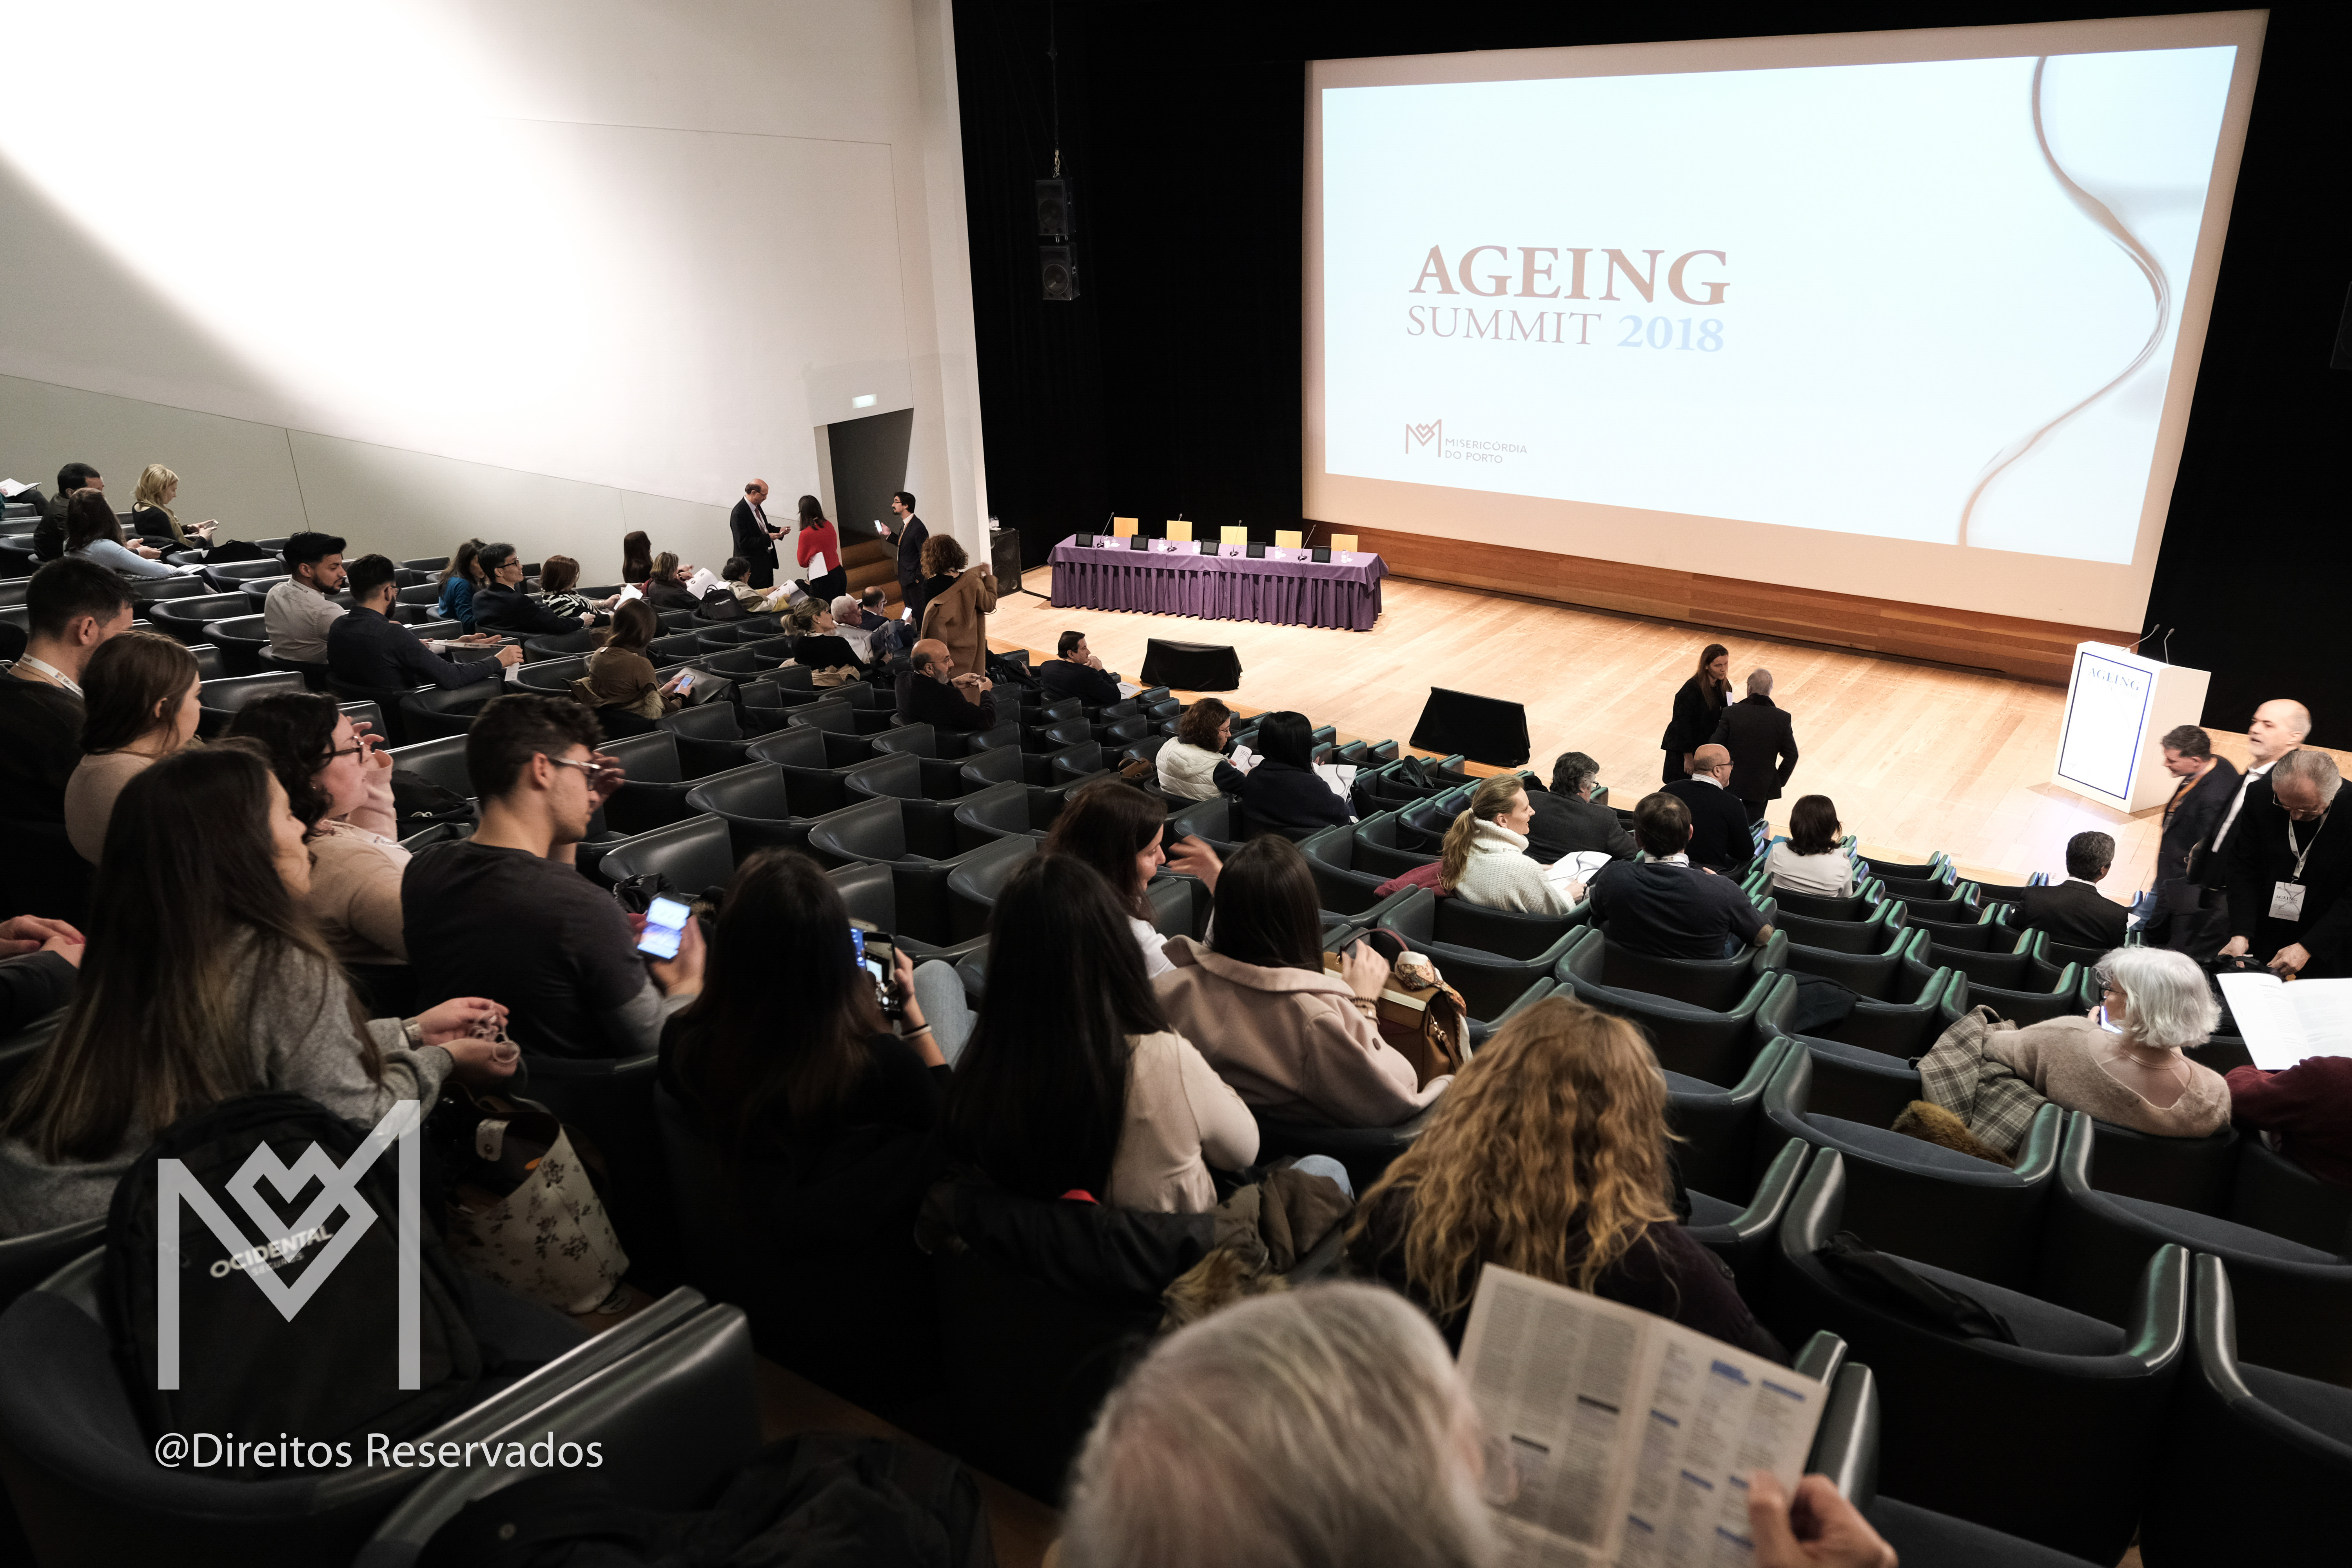 https://www.scmp.pt/assets/misc/img/noticias/2018/2018%2003%2016%20Ageing%20Summit/0040.jpg